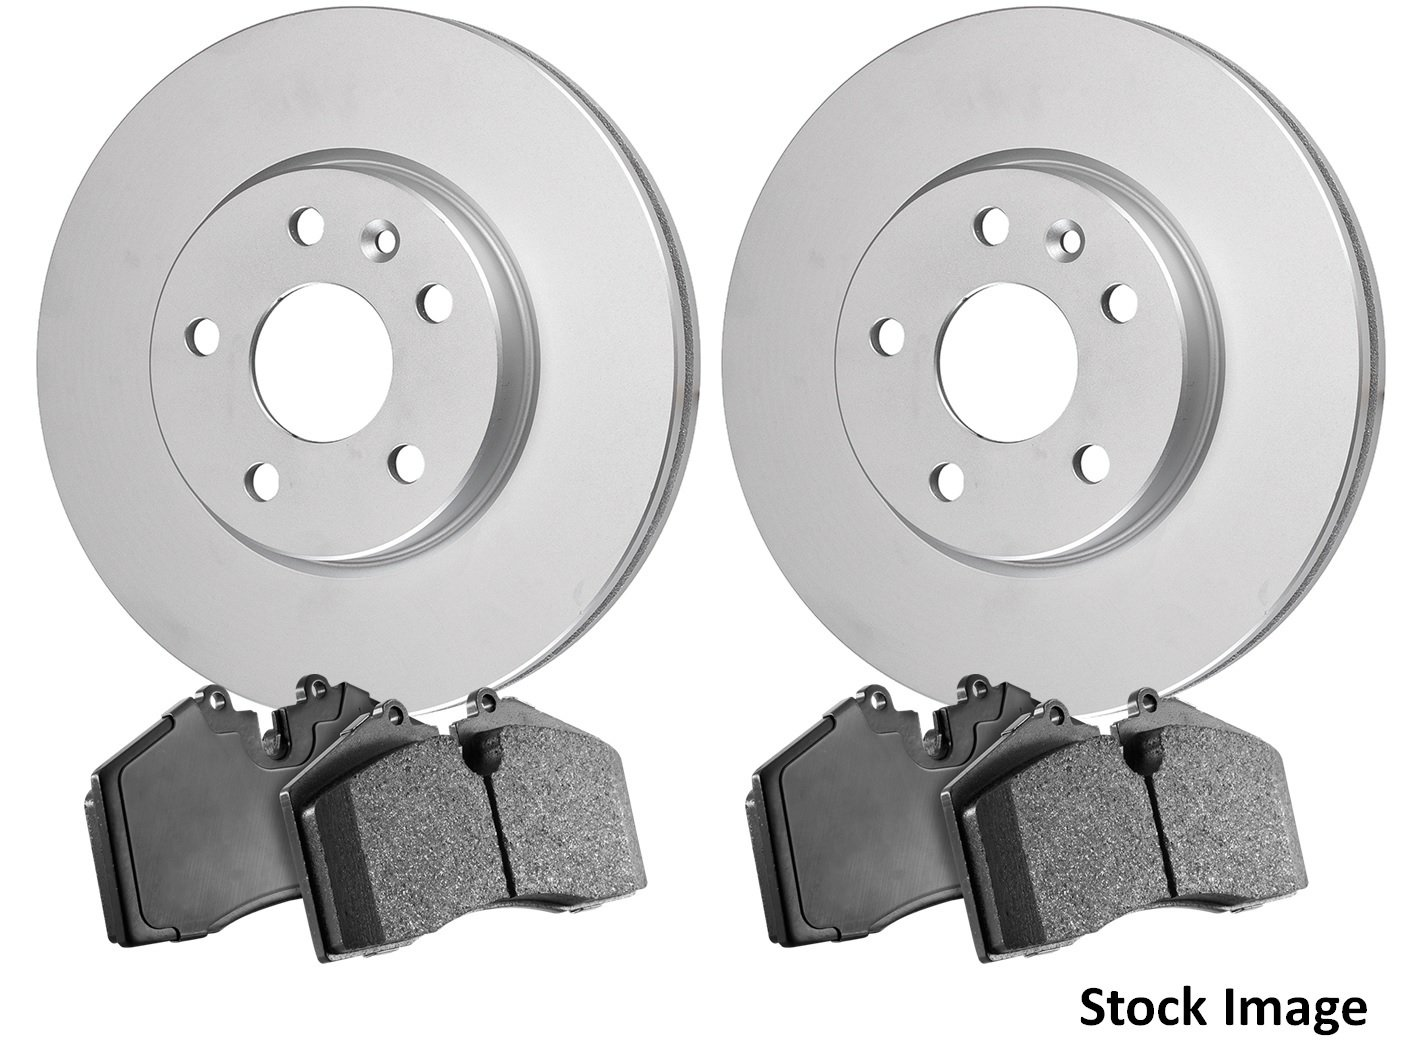 2008 For Dodge Charger Rear Anti Rust Coated Disc Brake Rotors and Ceramic Brake Pads Note: without Police Package; with 12.60 Diameter